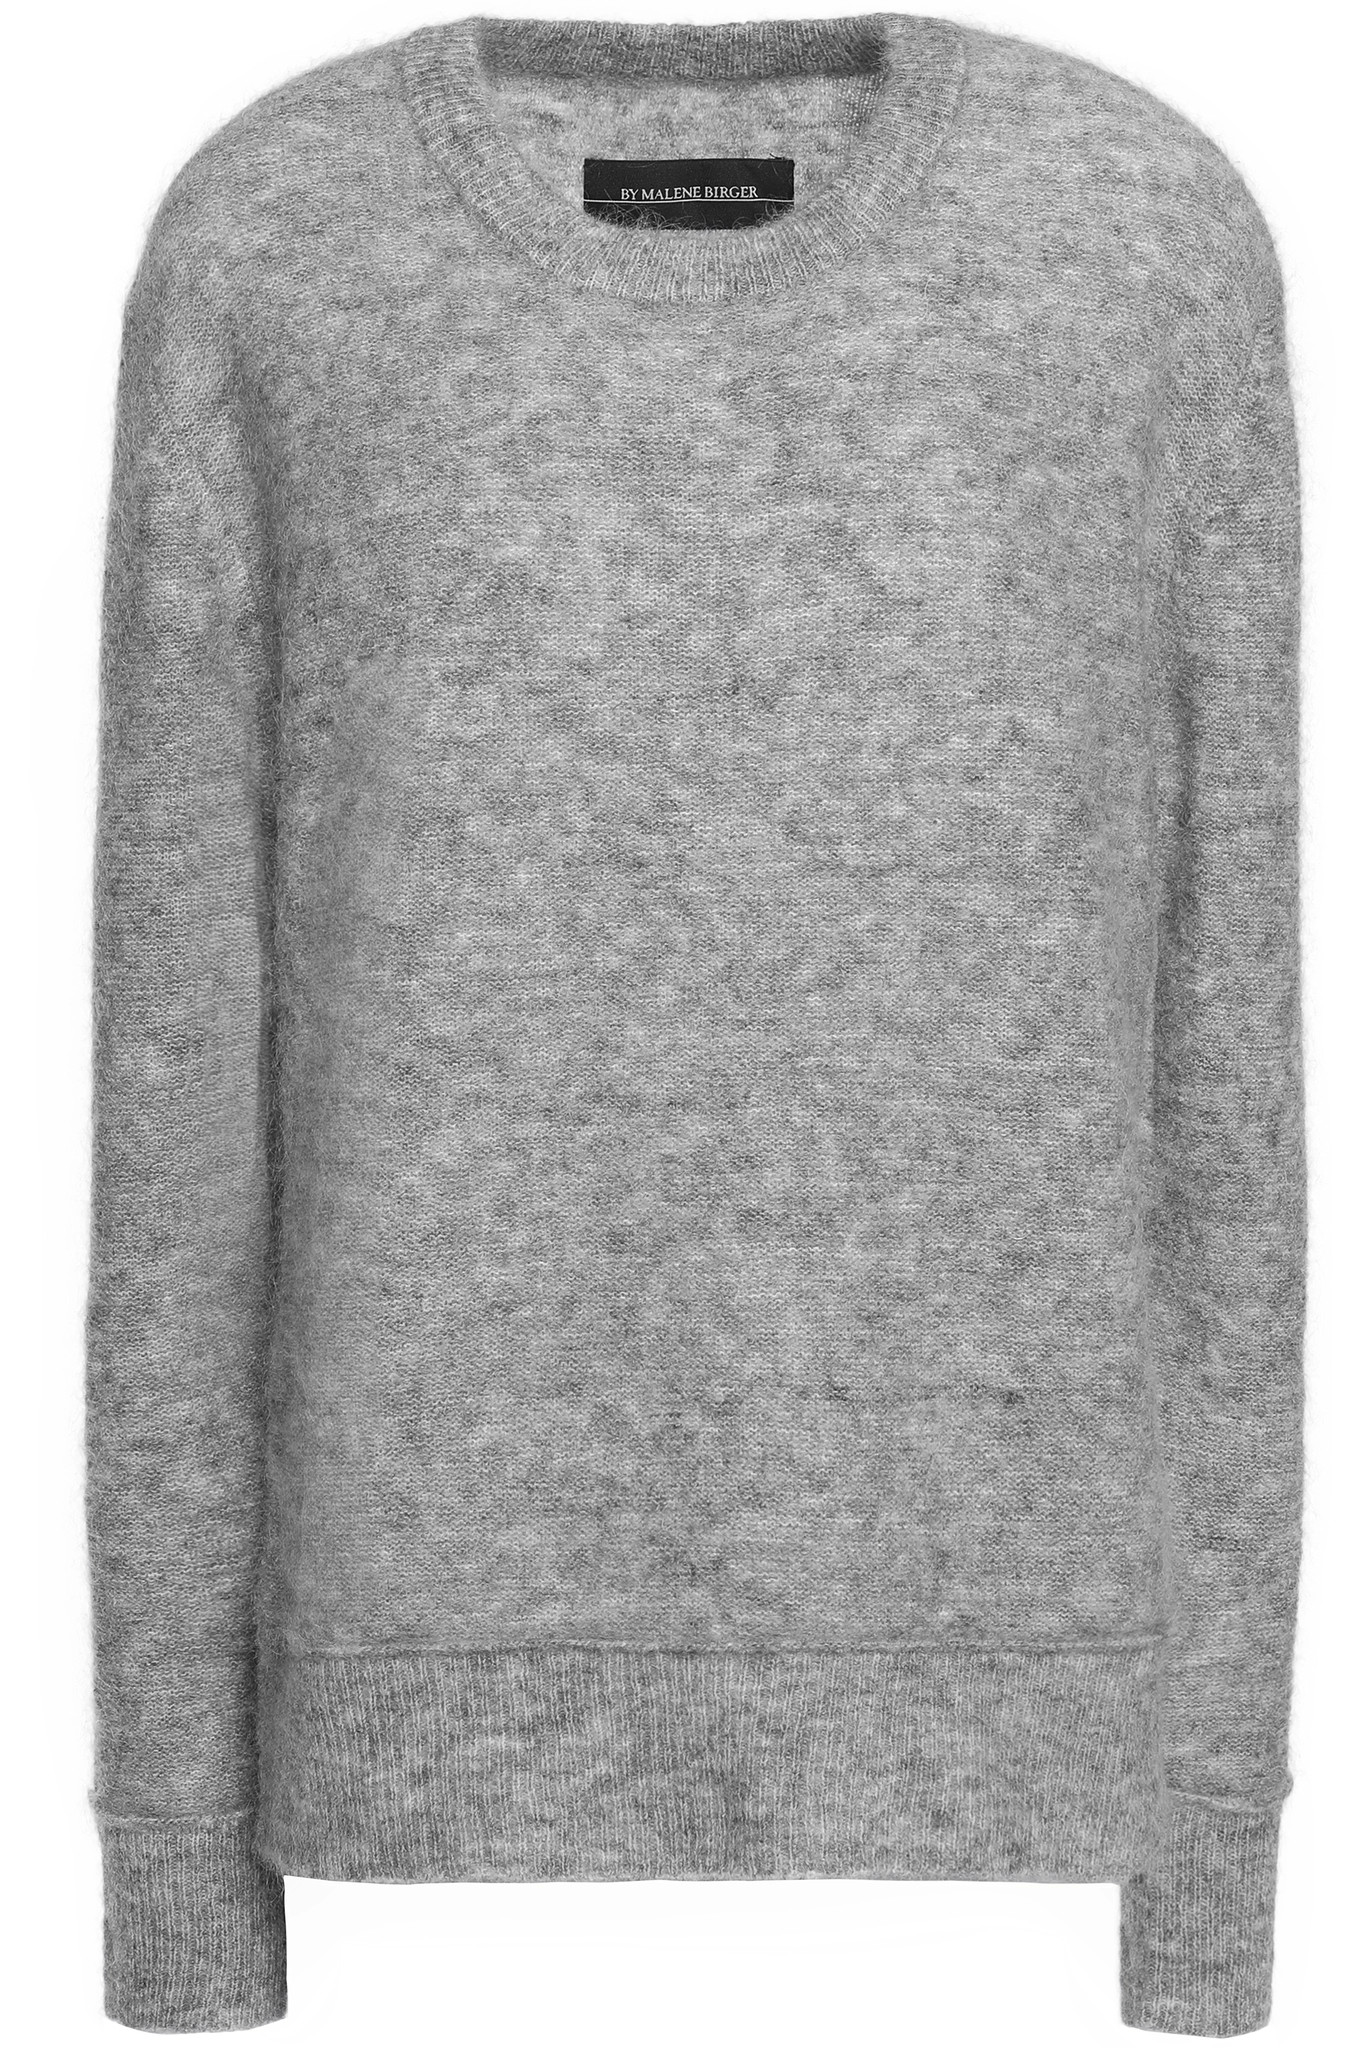 BY MALENE BIRGER Felt sweater